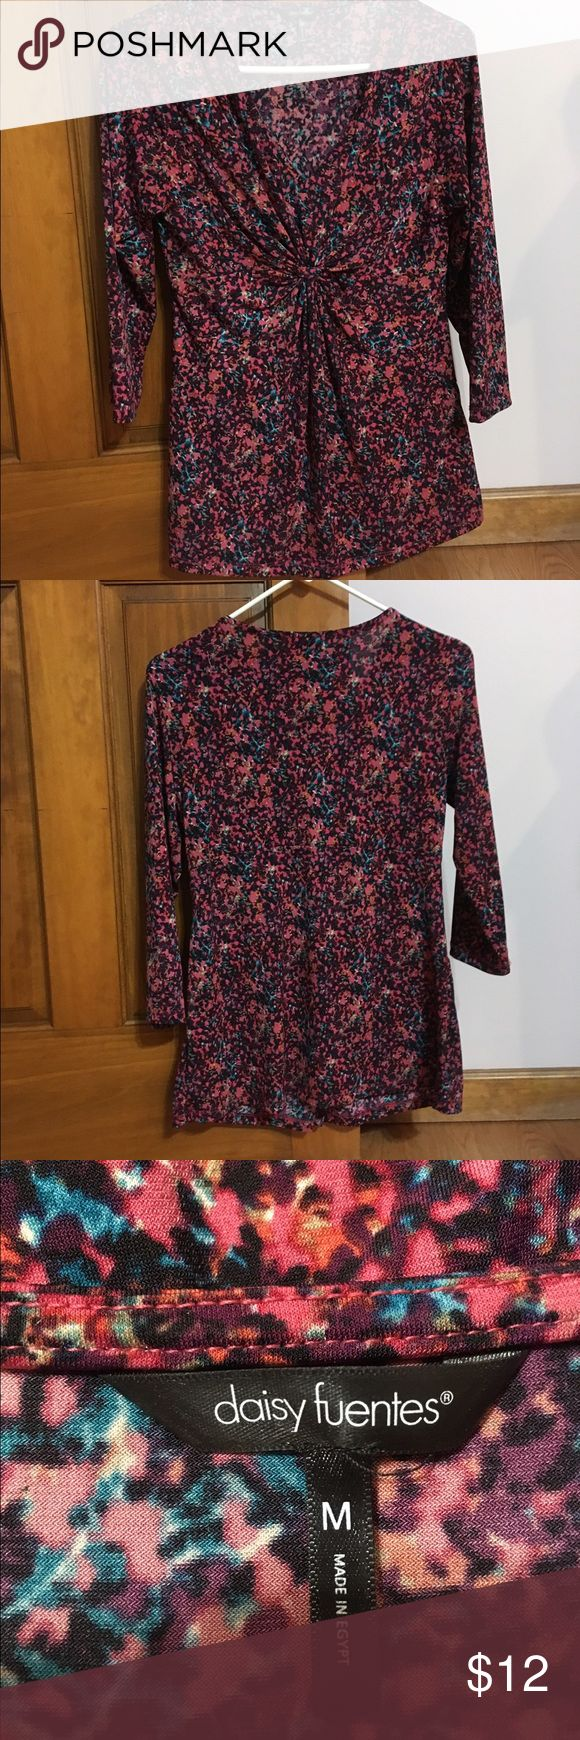 Daisy Fuentes Top This is an adorable top by Daisy Fuentes.  The pictures show the gathering in the front at a closer view.  This top is in great condition and shows no visible wear on it. Daisy Fuentes Tops Tunics